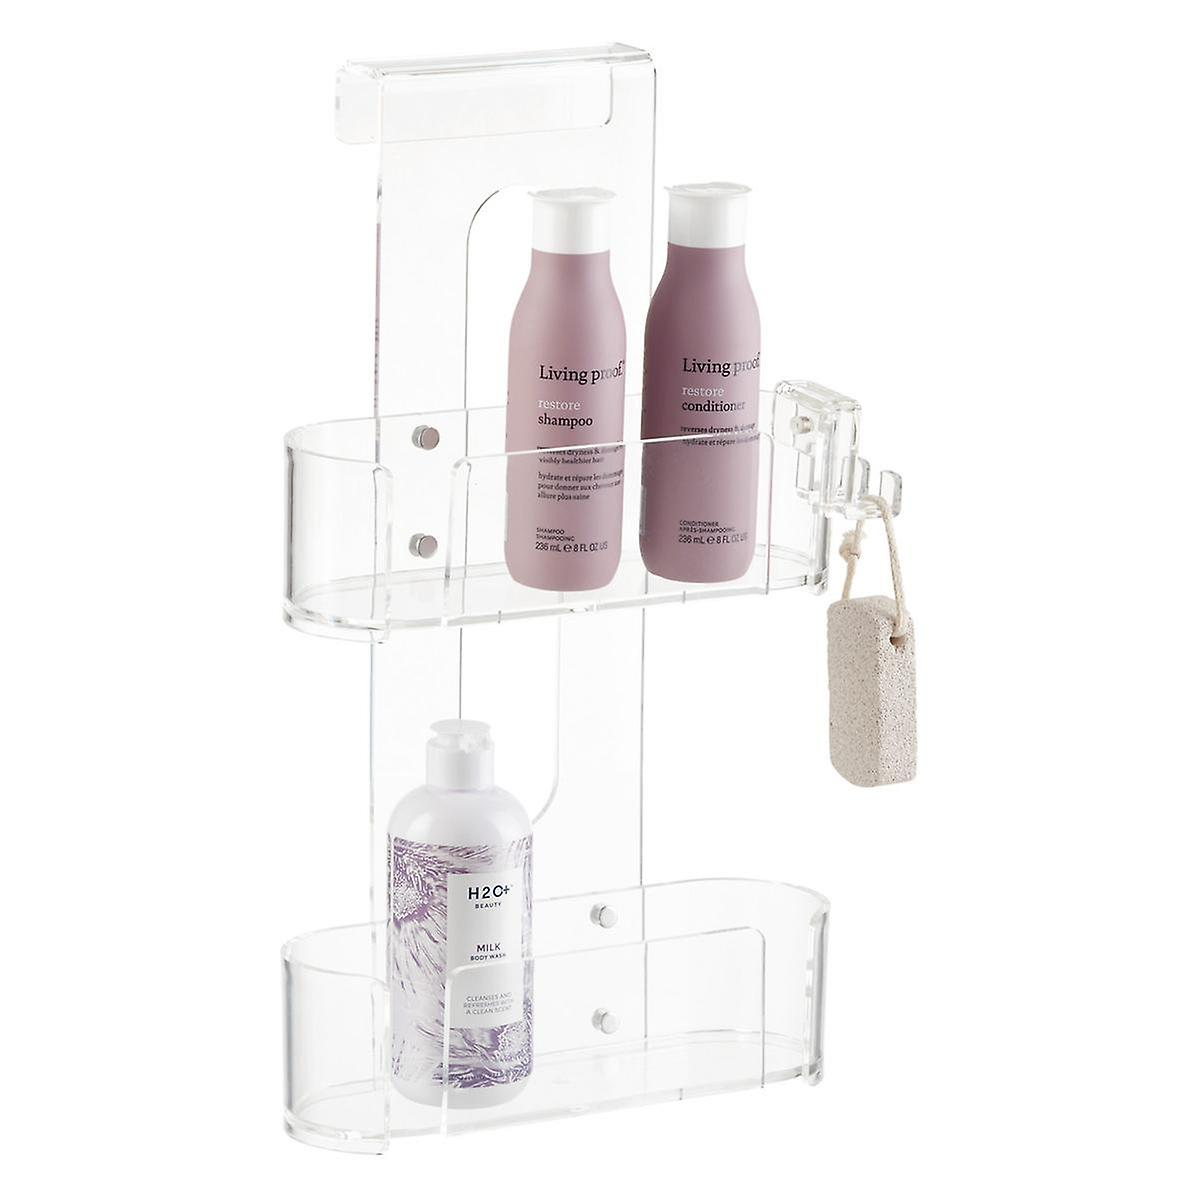 Shower Caddies, Shower Shelves & Shower Organizers | The Container ...